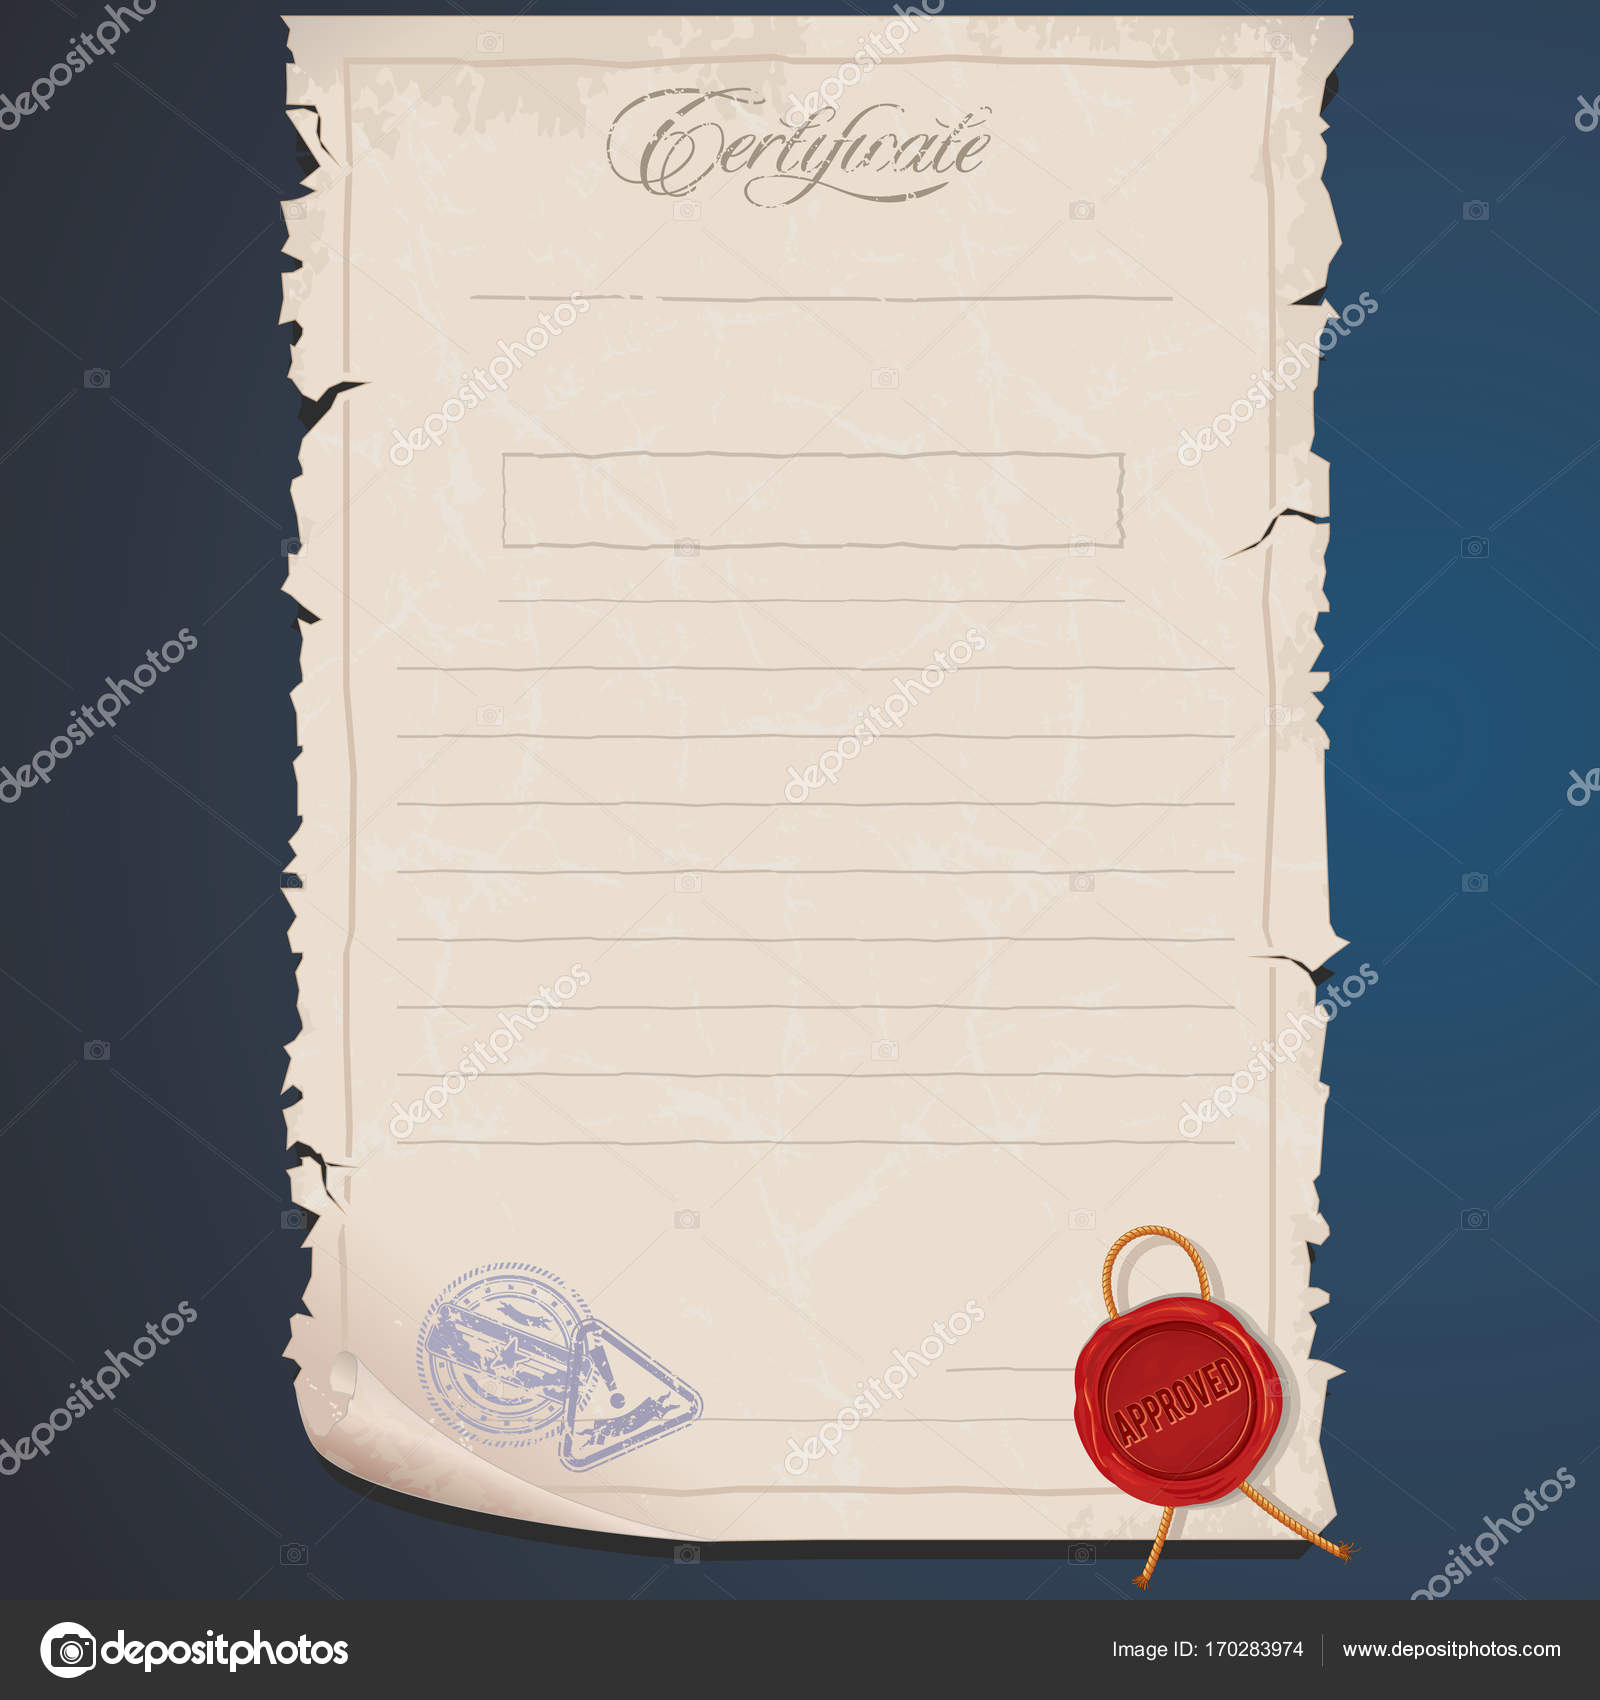 old paper certificate template editable image stock photo